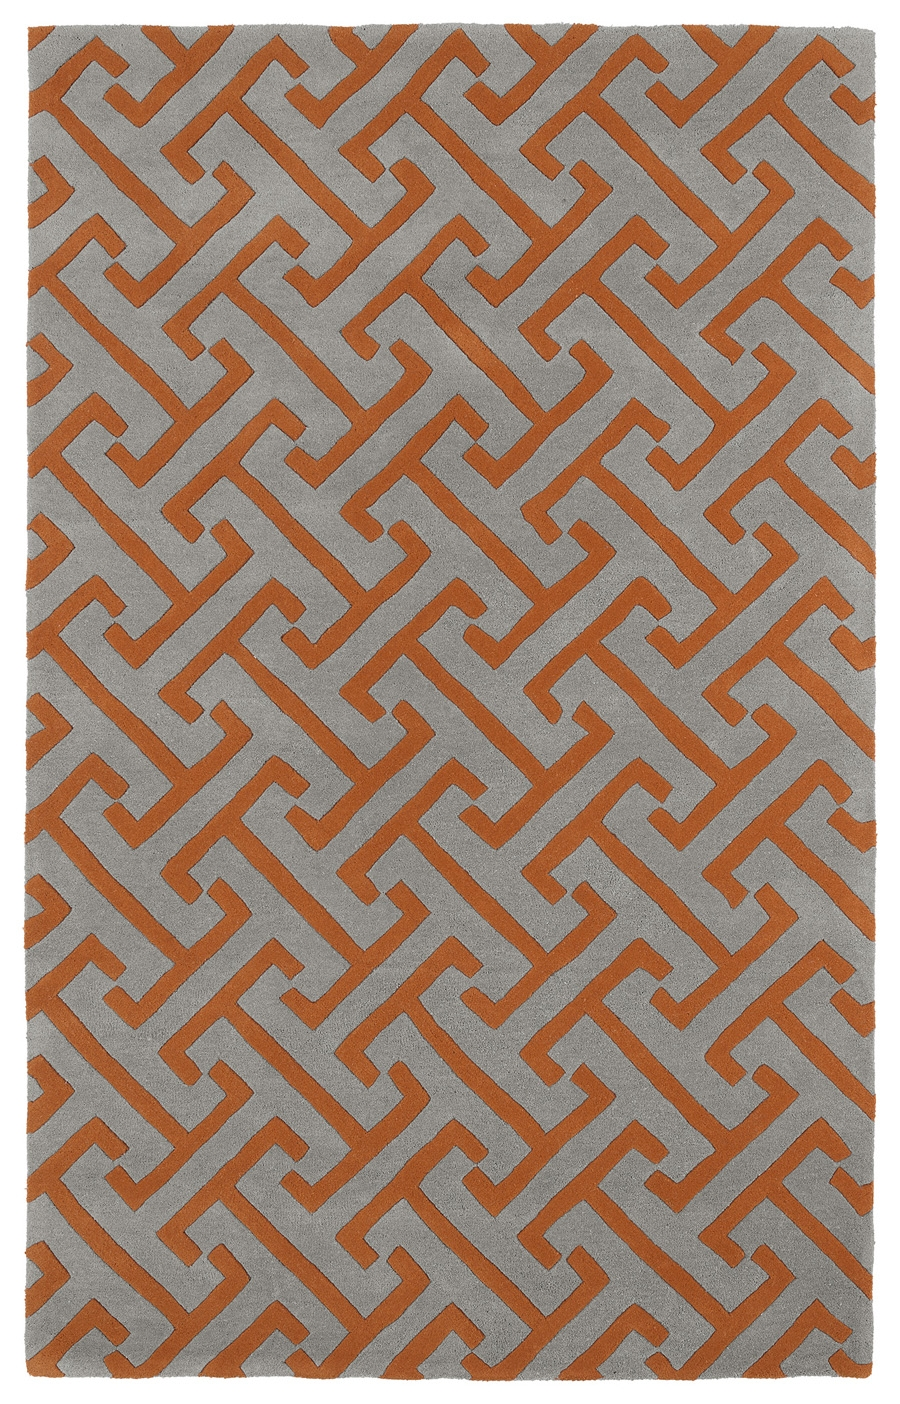 Kaleen Revolution REV04 75 Grey Rug